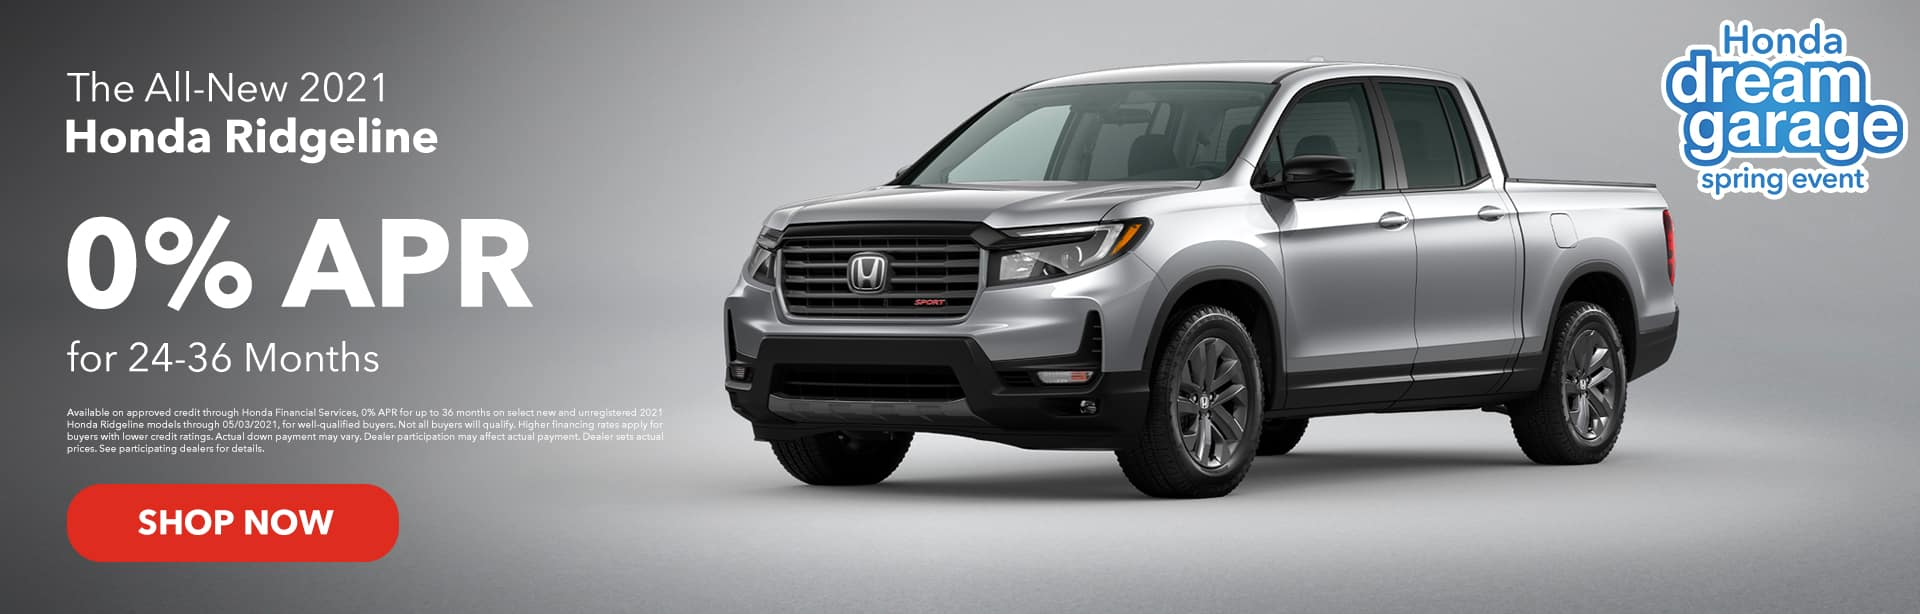 The All-New 2021 Honda Ridgeline